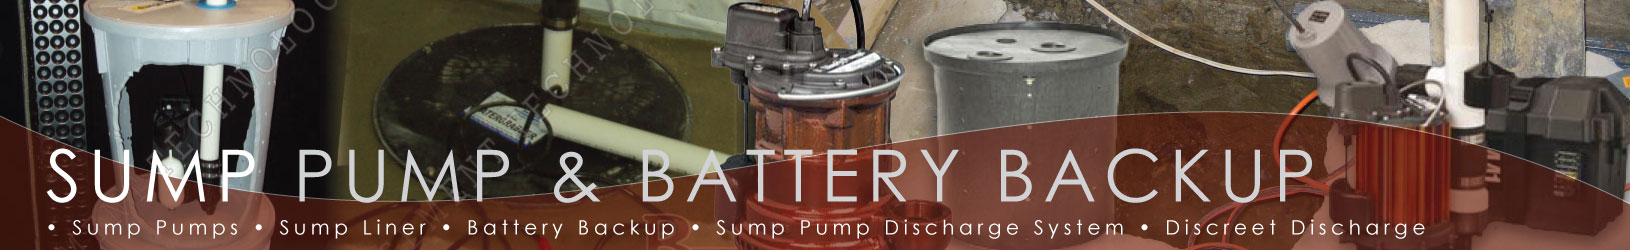 BT Sump Pump Installation